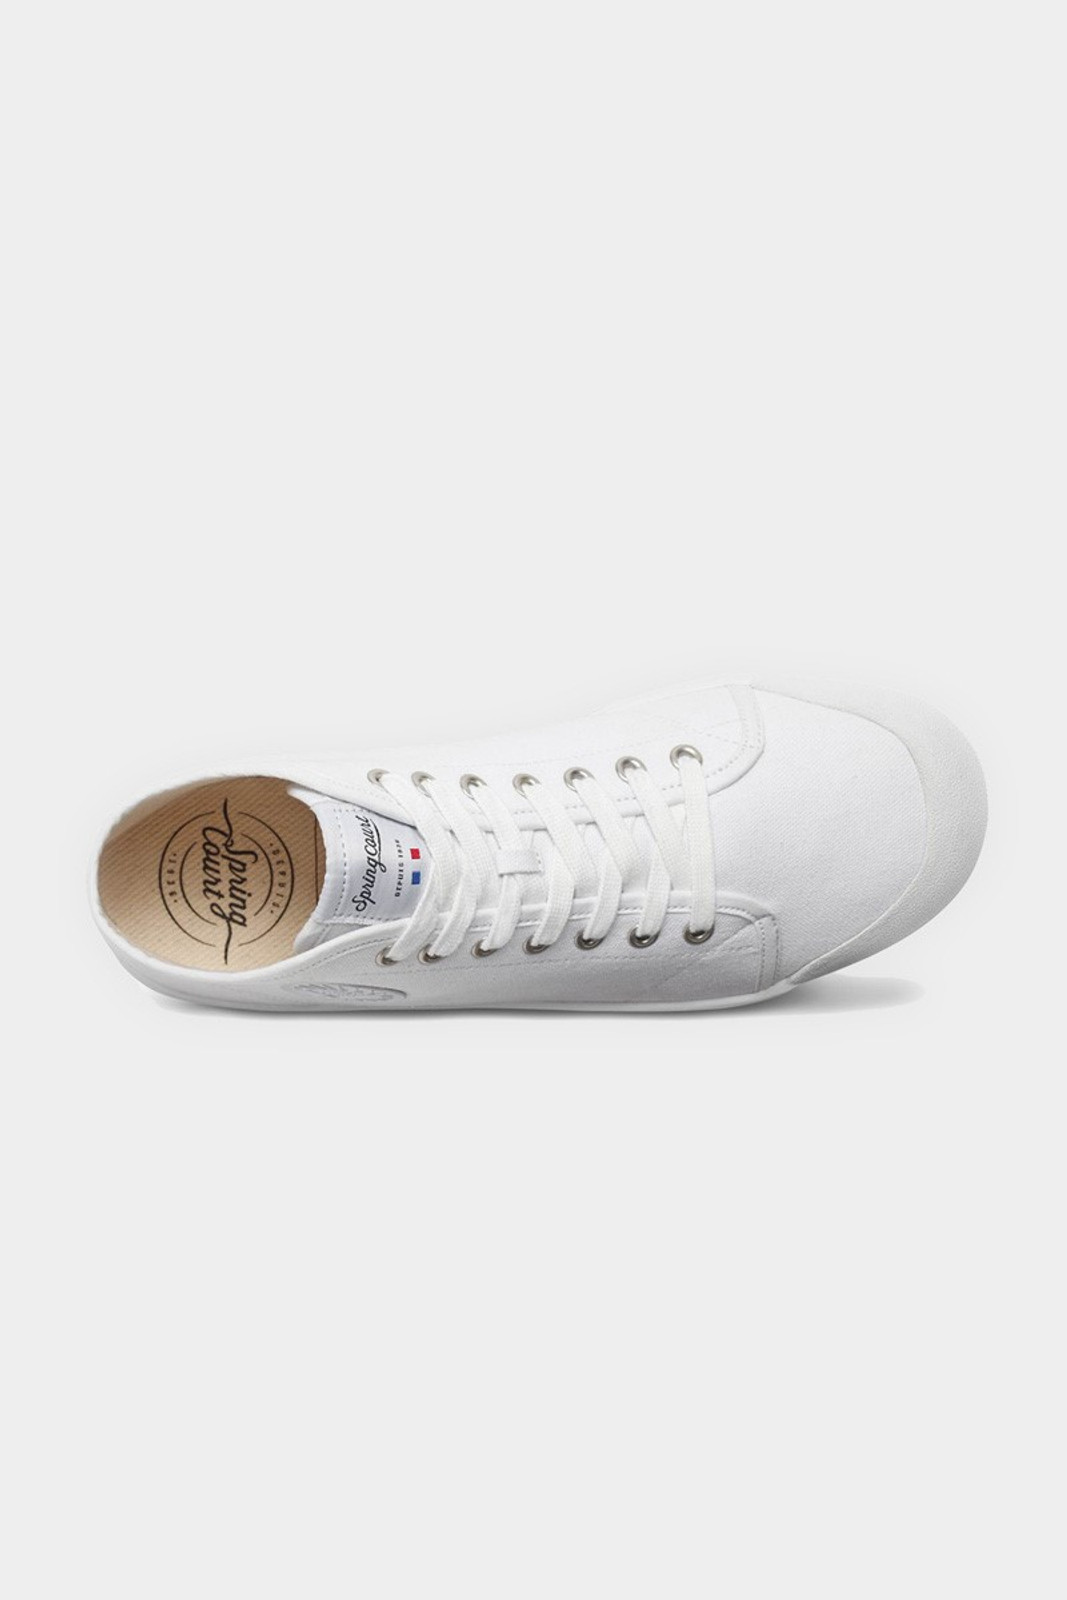 Elka Collective B2 WOMENS CANVAS White  1